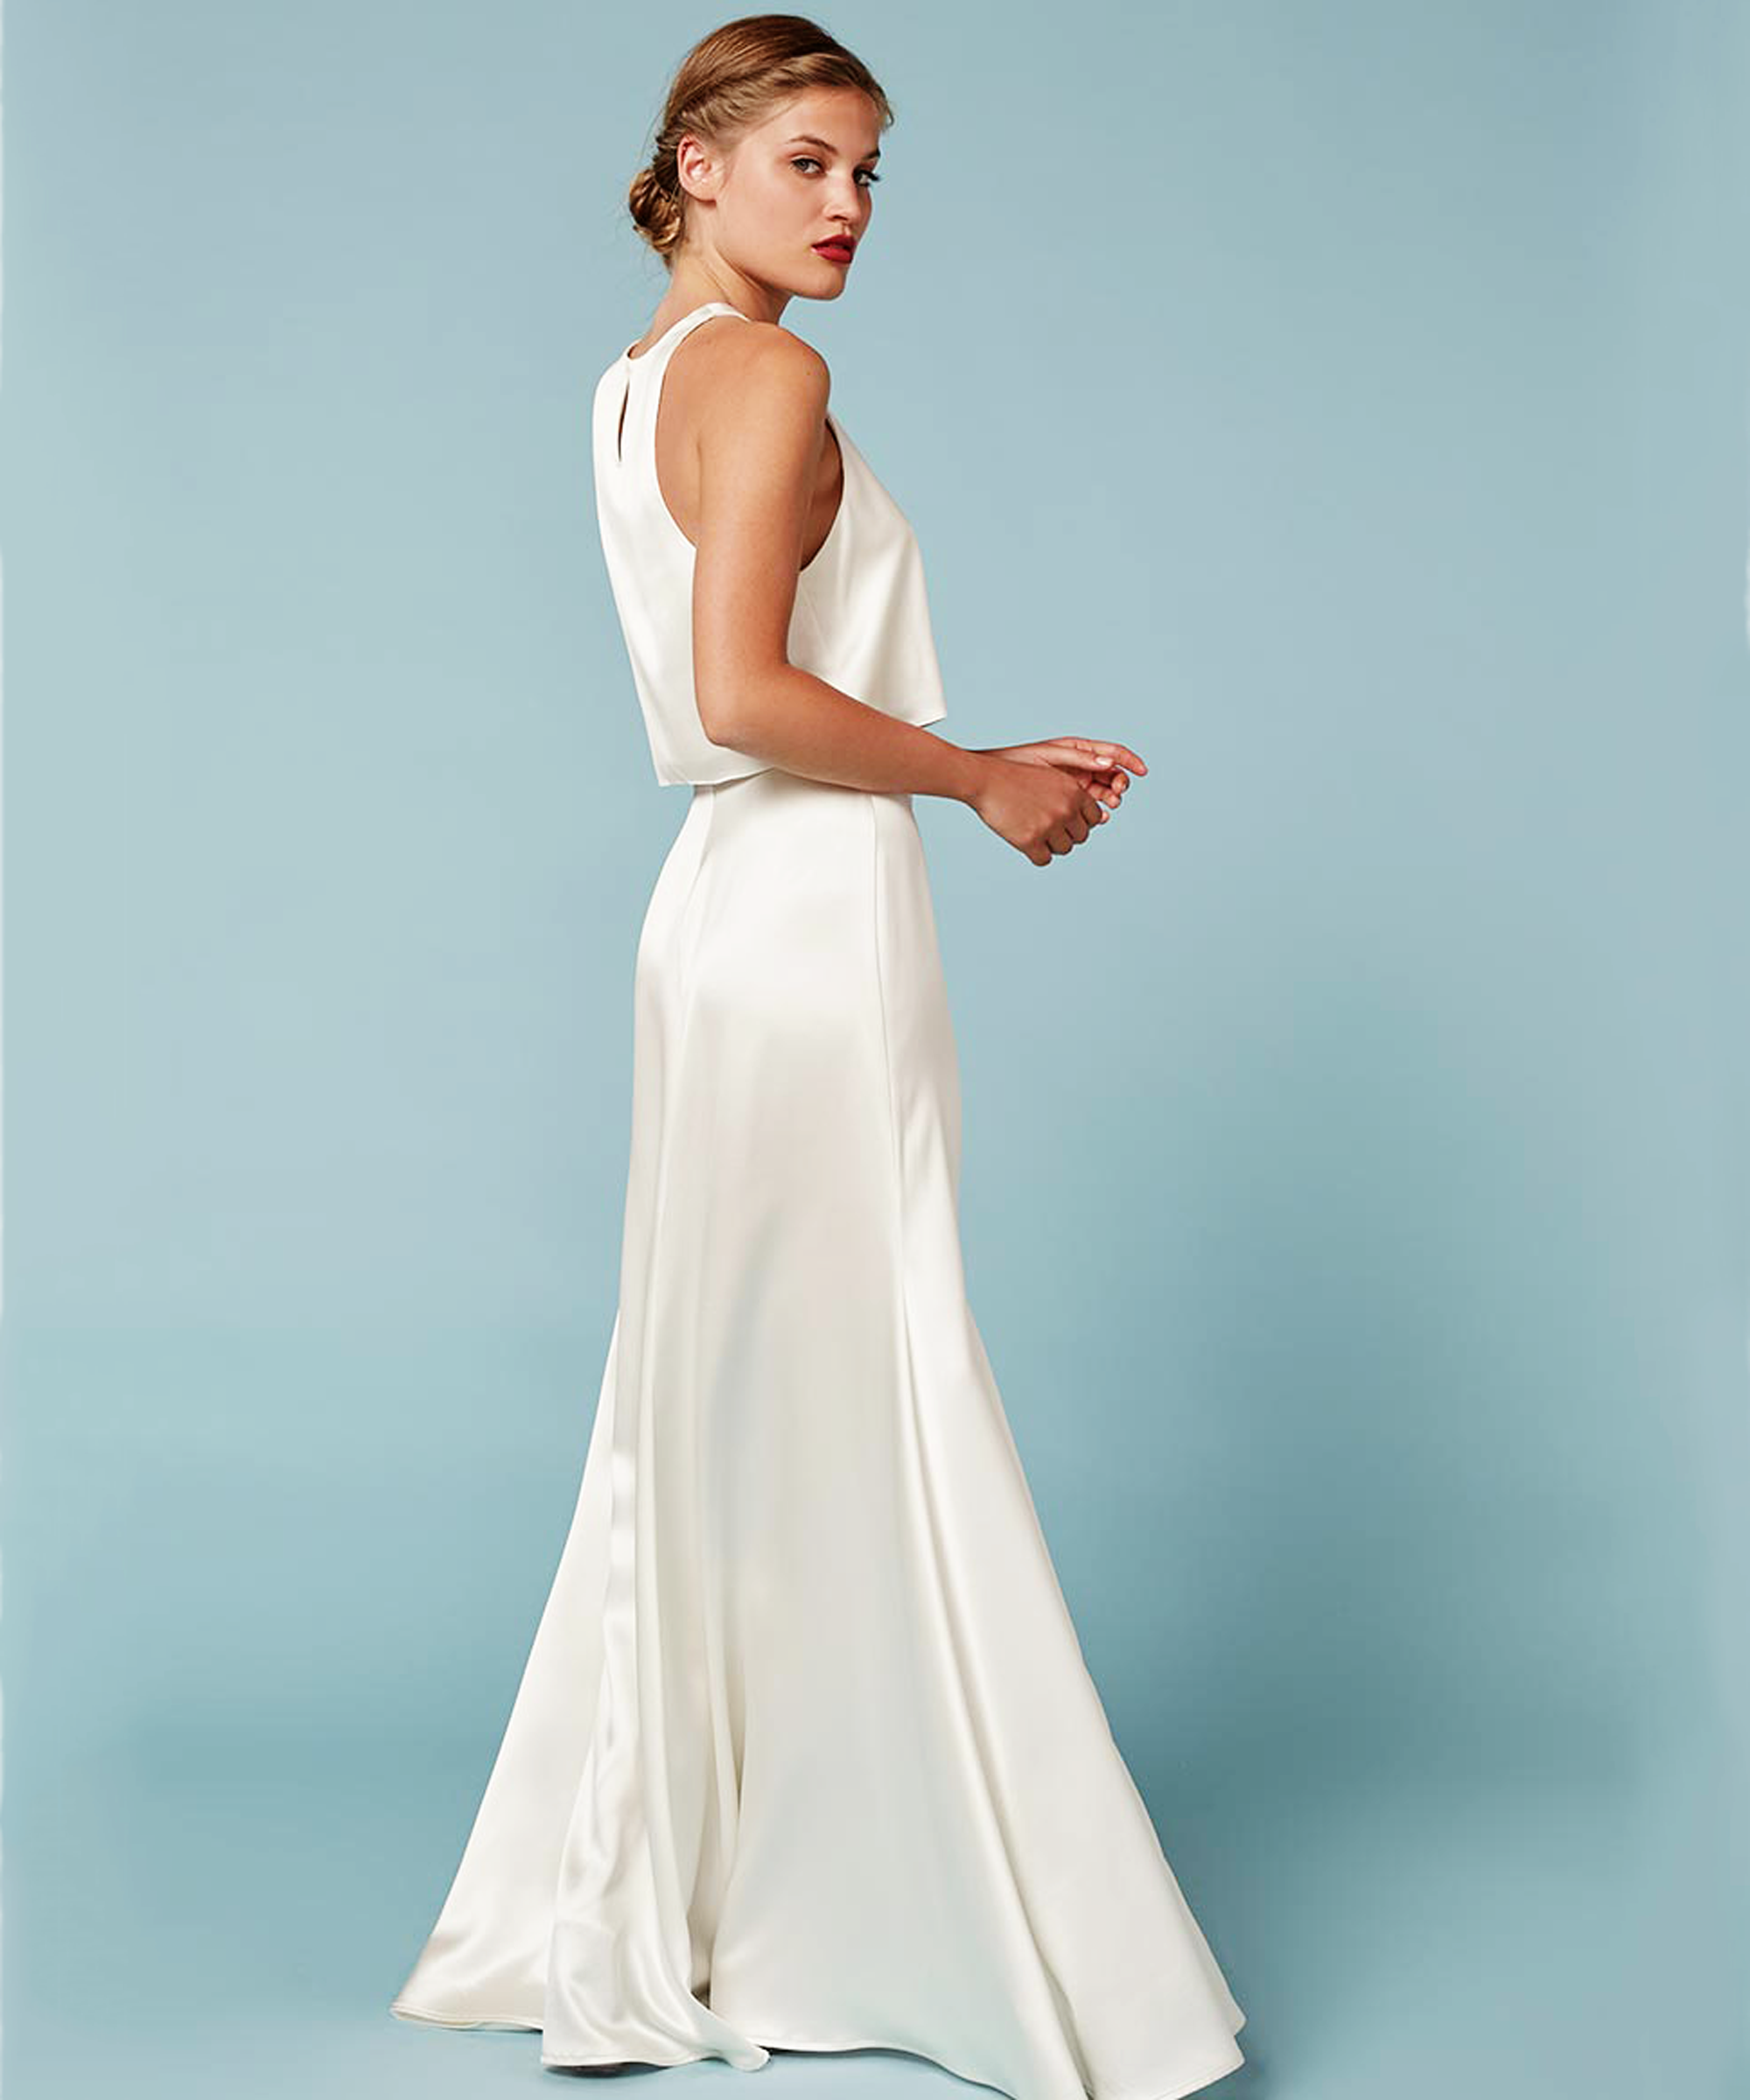 Reformation wedding dress affordable wedding dresses for Second wedding dresses not white